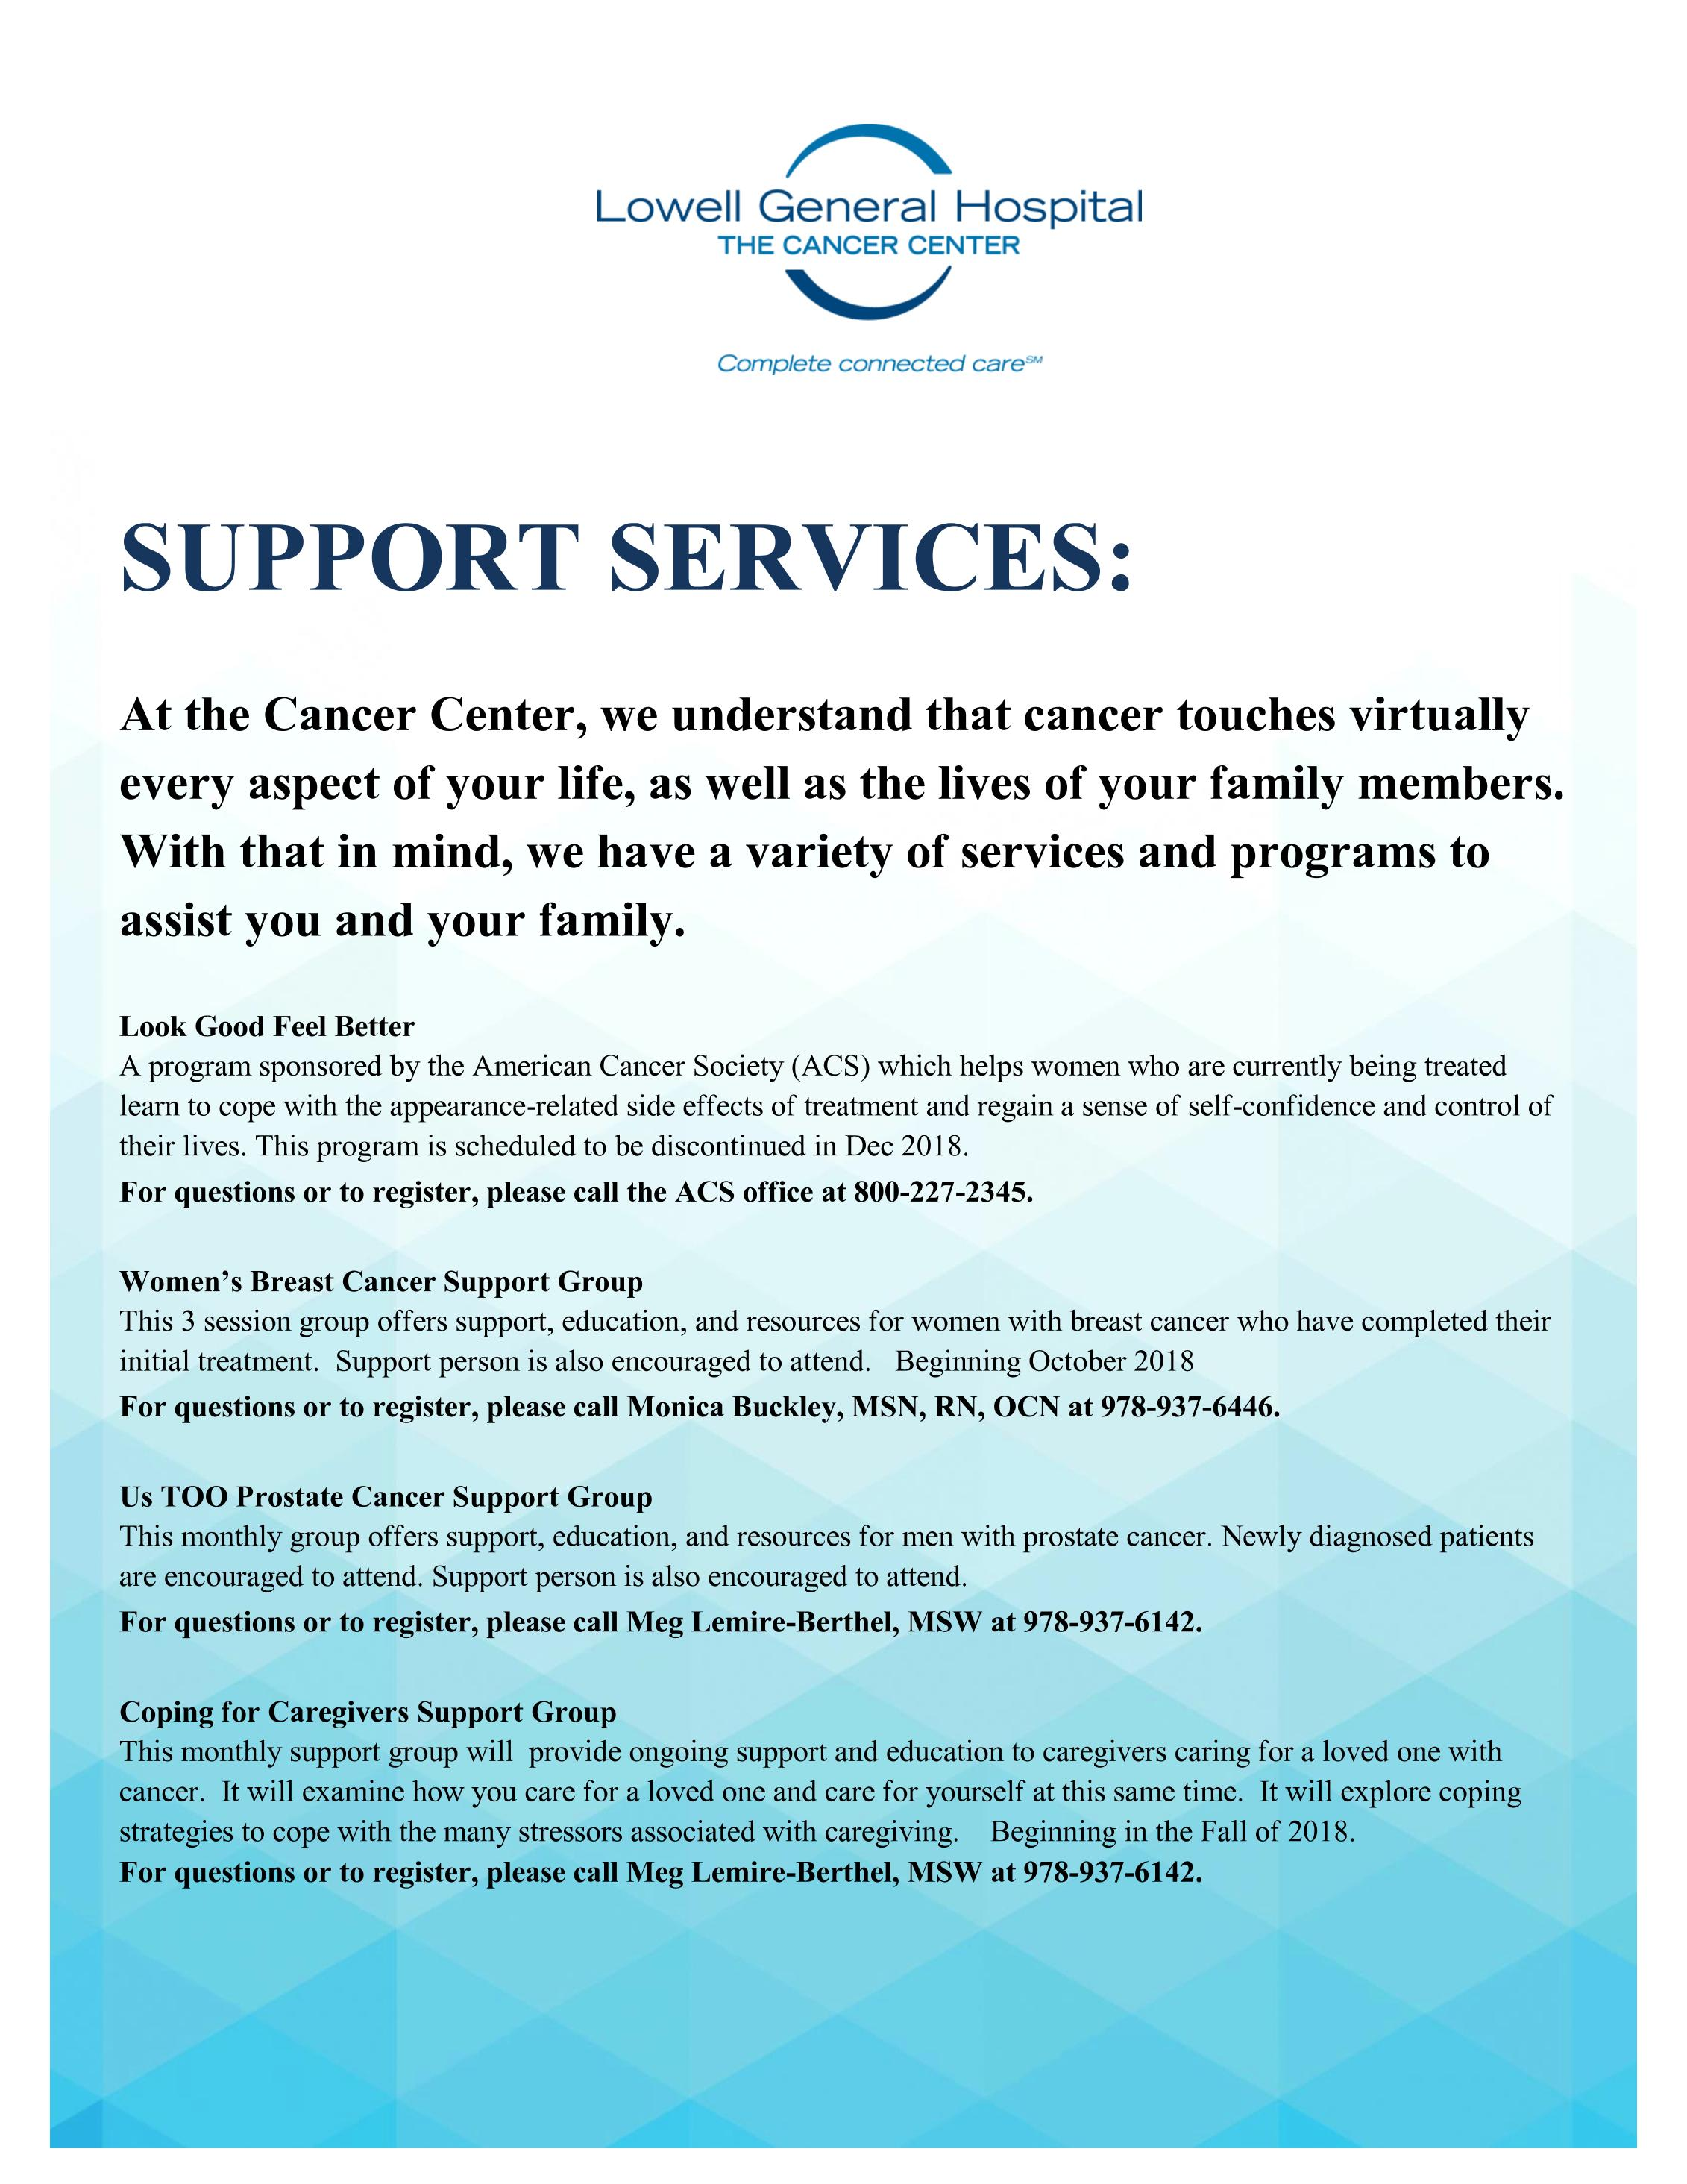 Cancer Center support services